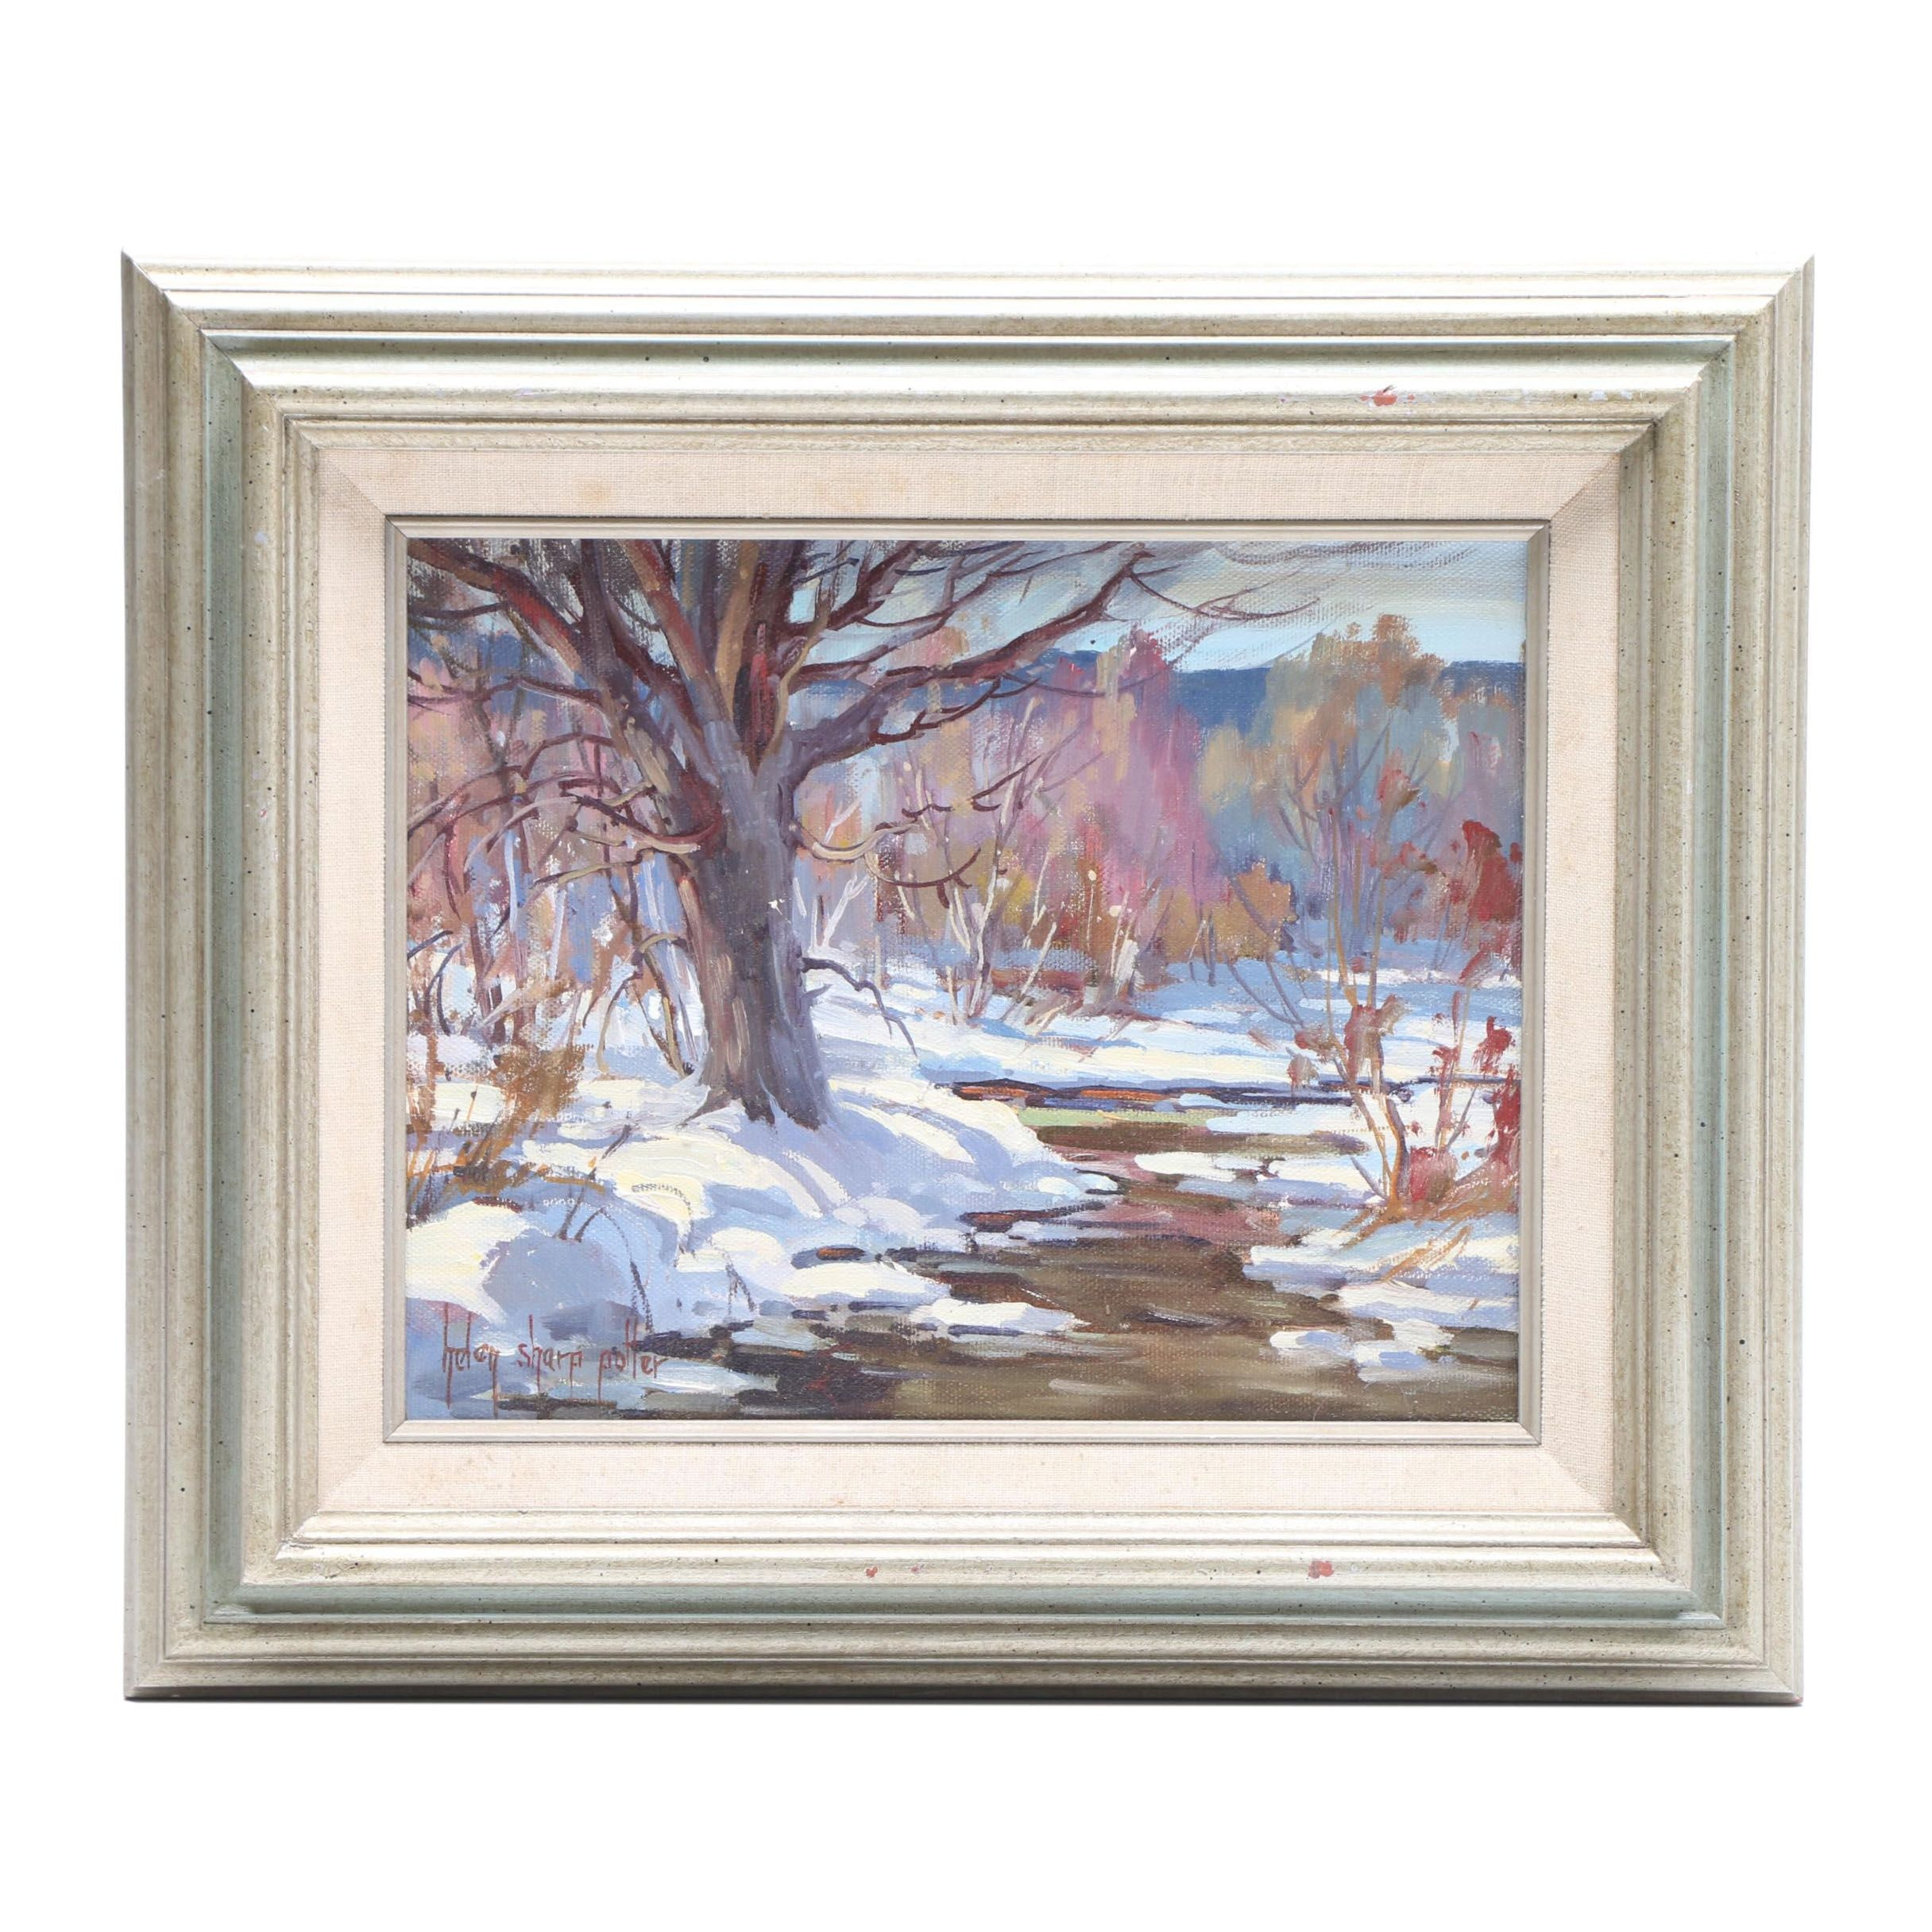 "Helen Sharp Potter Oil Landscape Painting ""Winter Brook"""